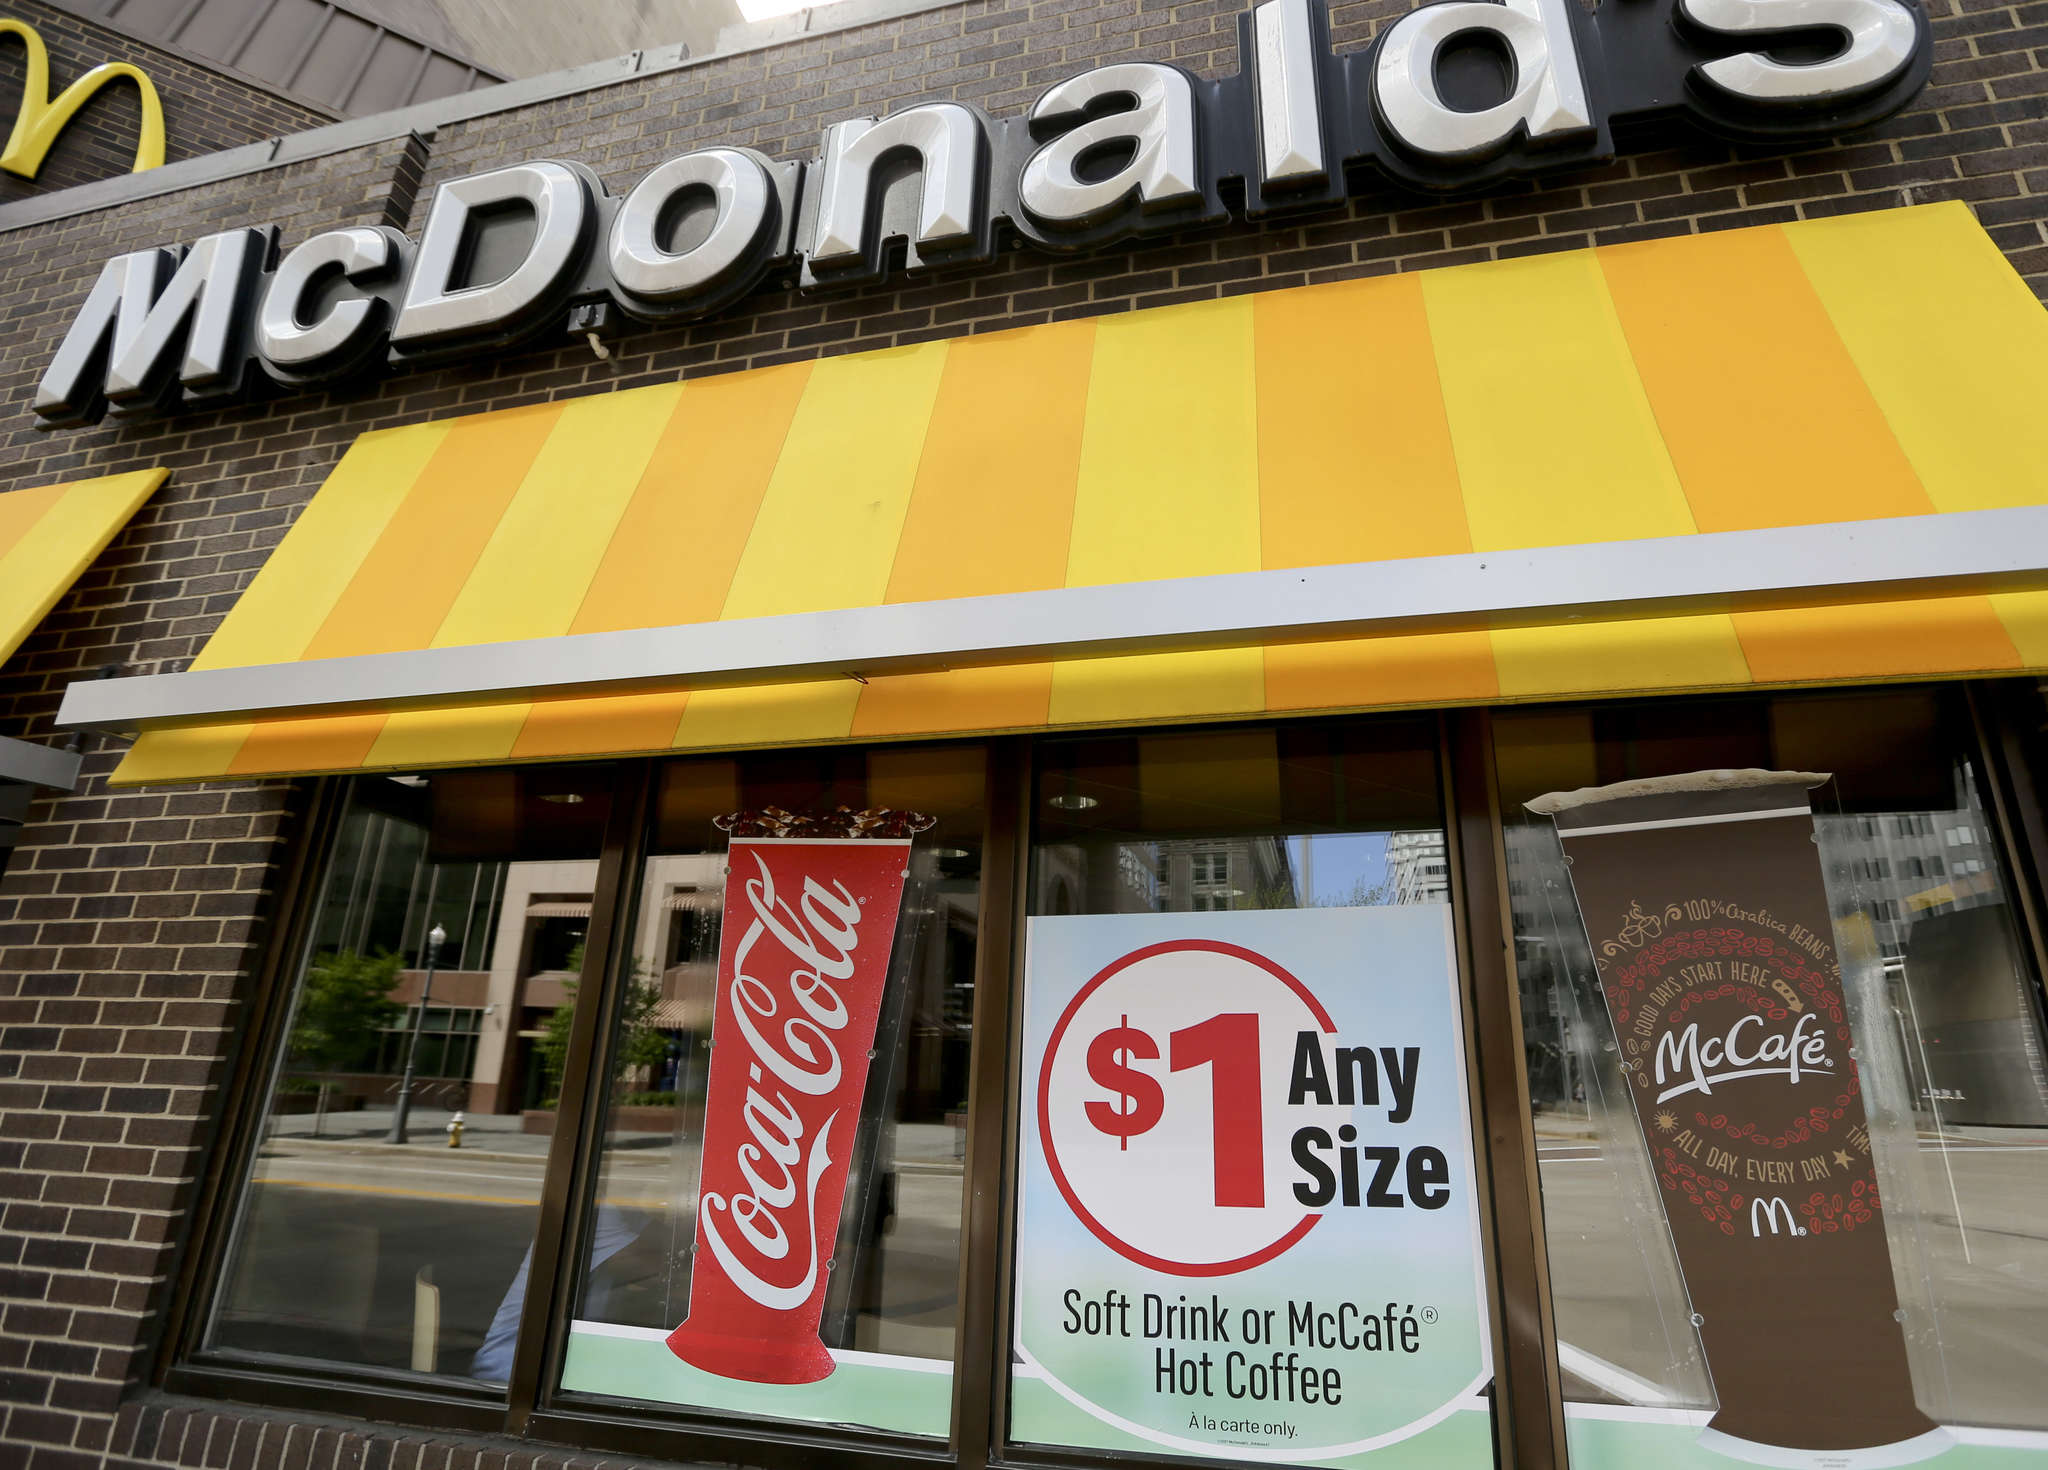 New menu items, less expensive drinks, and new technology helped drive up McDonald´s first-quarter earnings. Profits rose 8 percent, to $1.21 billion. Same-store U.S. sales were up 1.7 percent. The stock gained 5.6 percent, or $7.47, to $141.70.